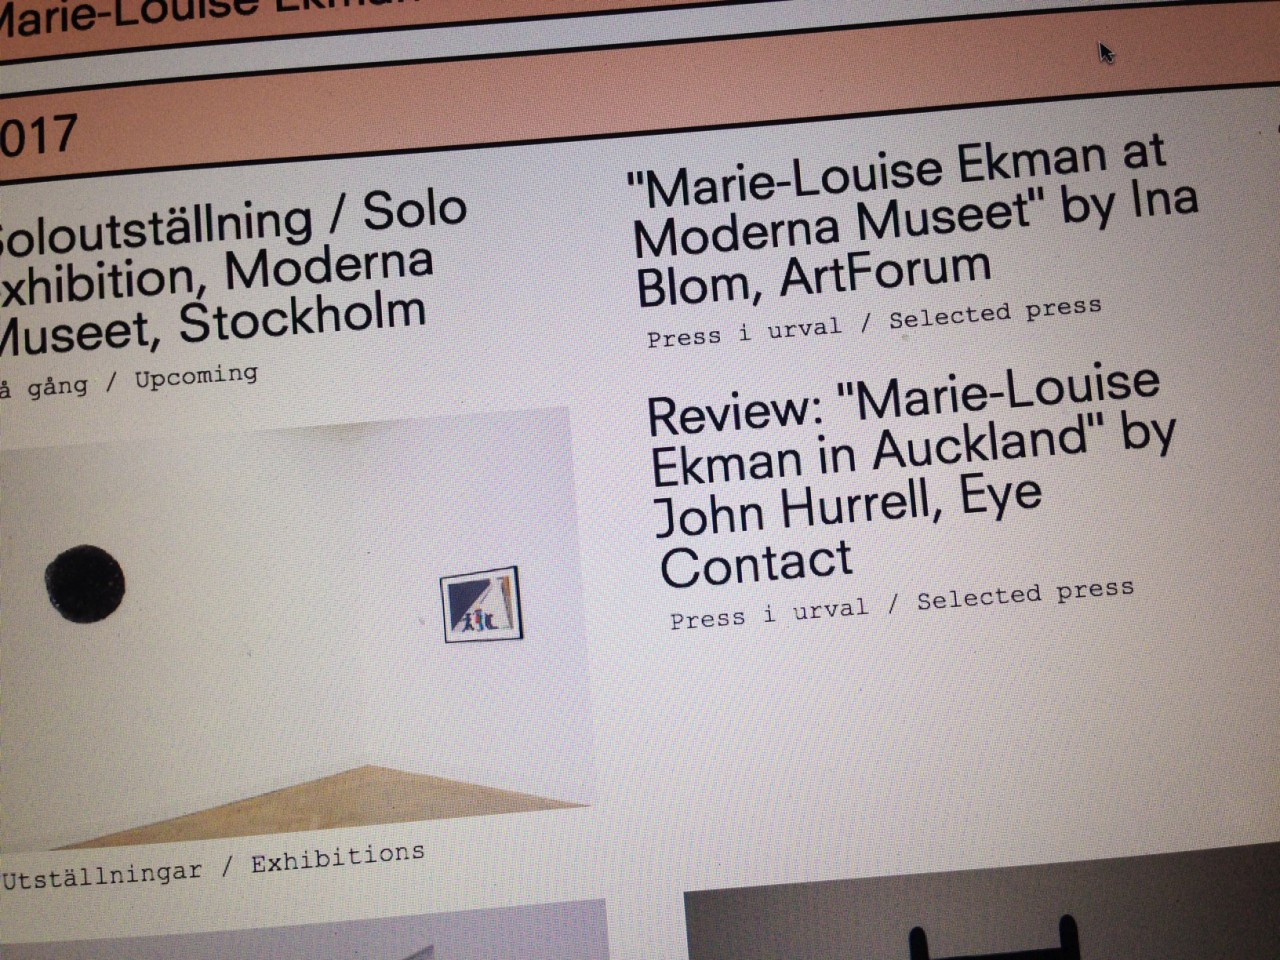 Sara Kaaman Marie-Louise Ekman – website